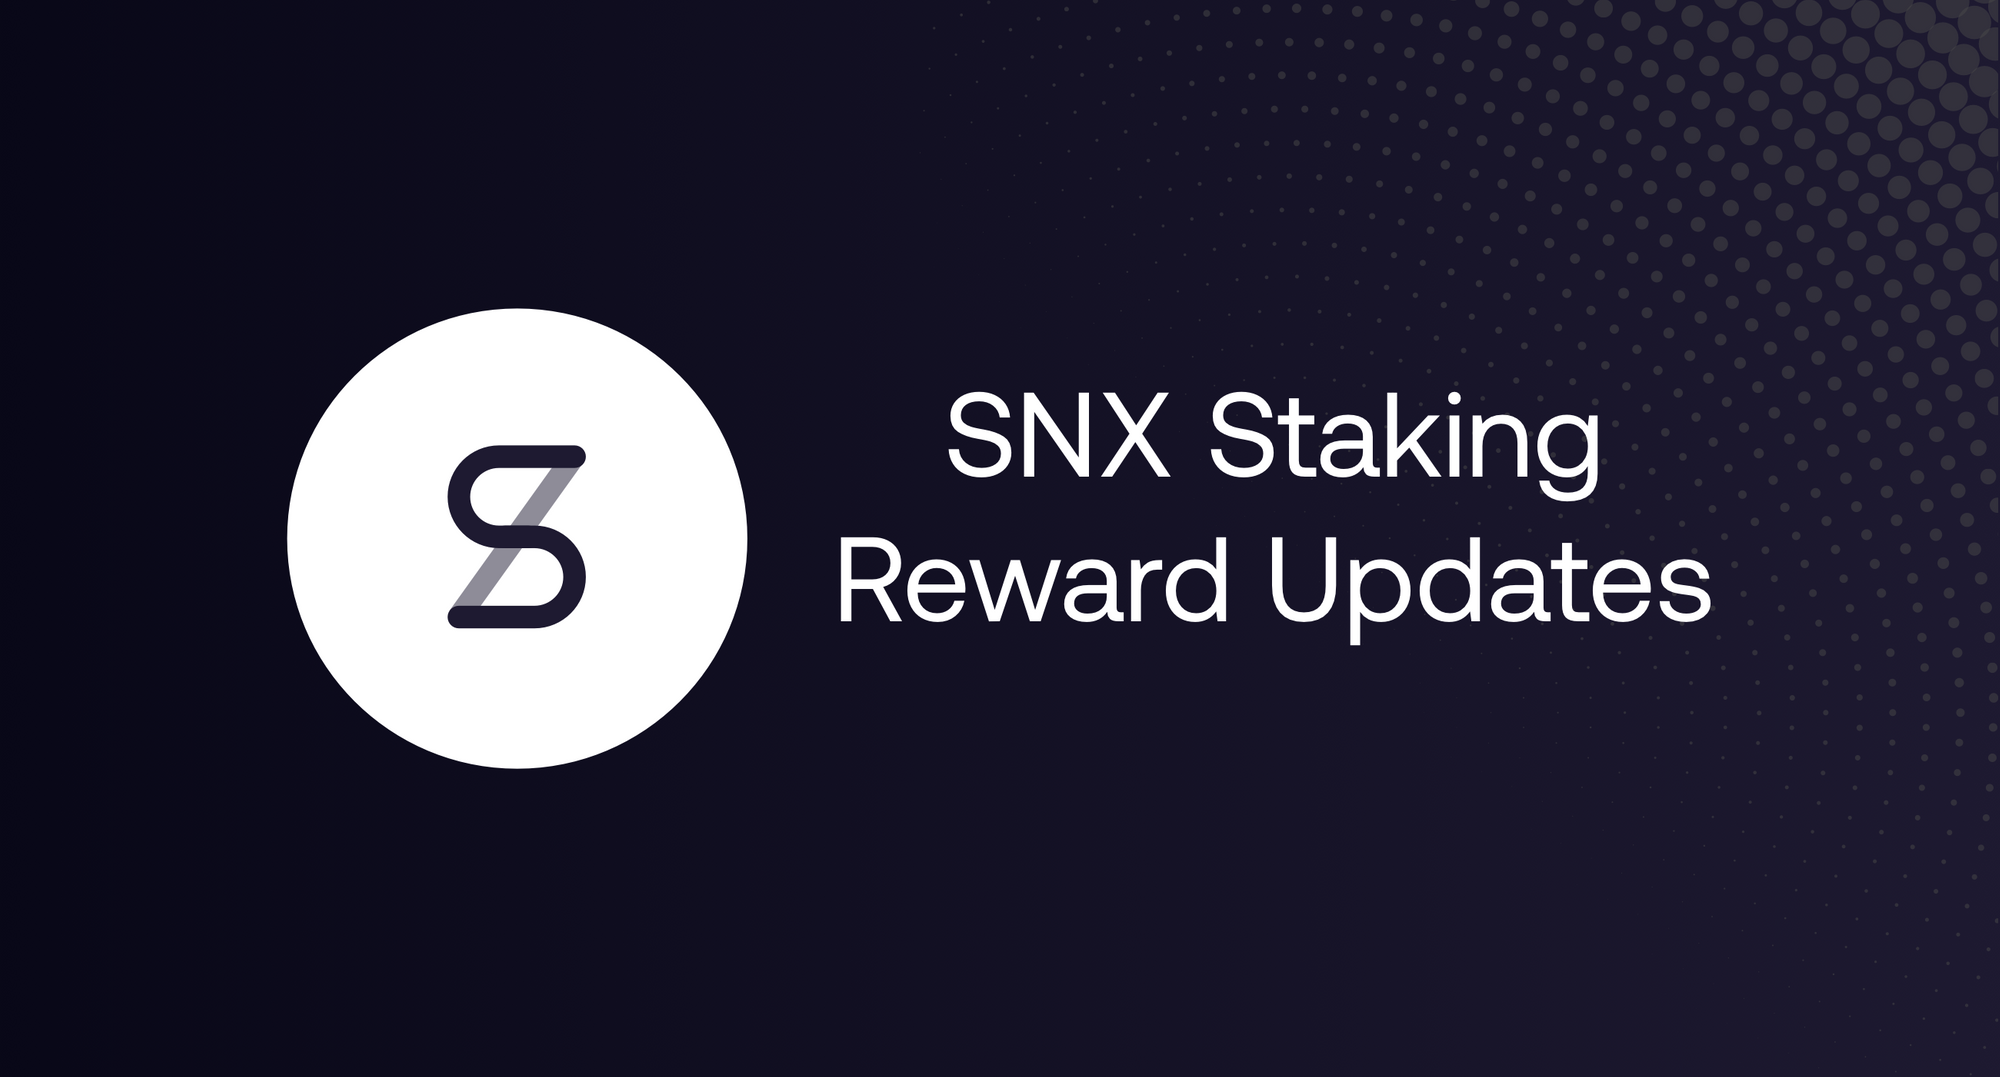 SNX Staking Reward Updates